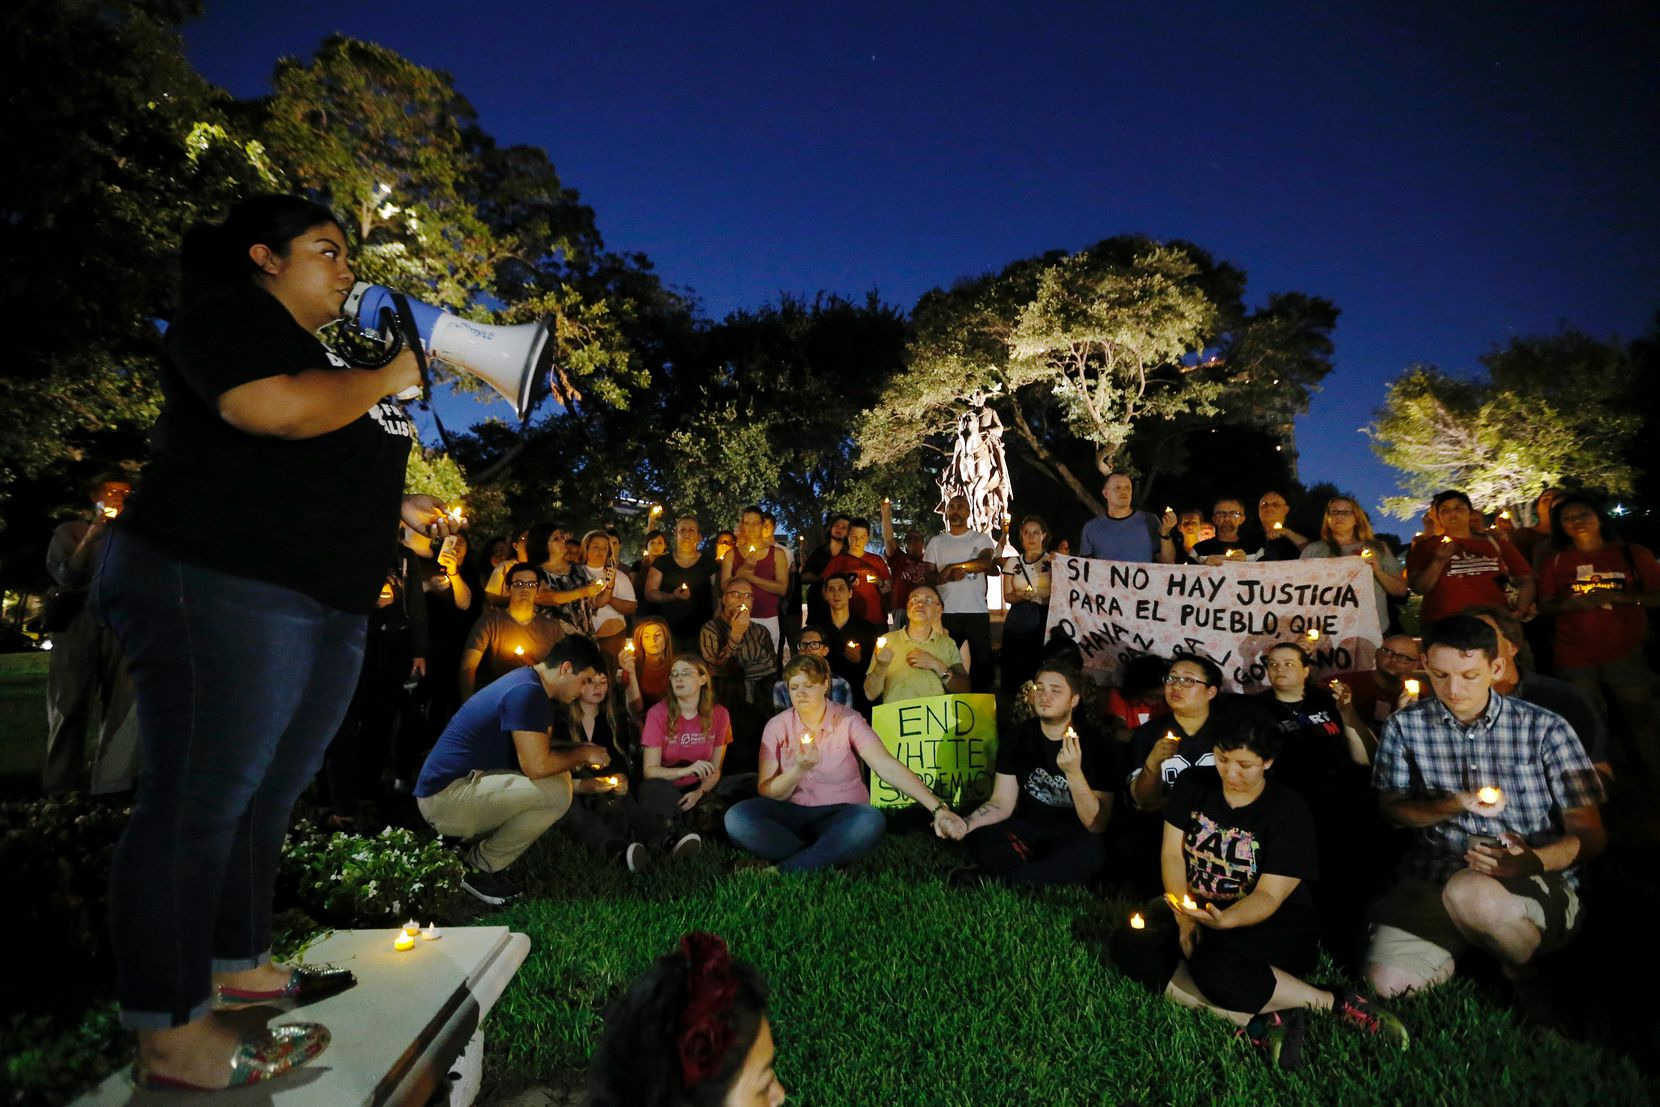 A statue of Robert E. Lee stands in the background as Democratic Socialists of America, North Texas Group, co-chair Kristian Hernandez leads a demonstration against white supremacy and holds a candlelight vigil in remembrance of Heather Heyer at Lee Park in Dallas on Aug. 23, 2017.